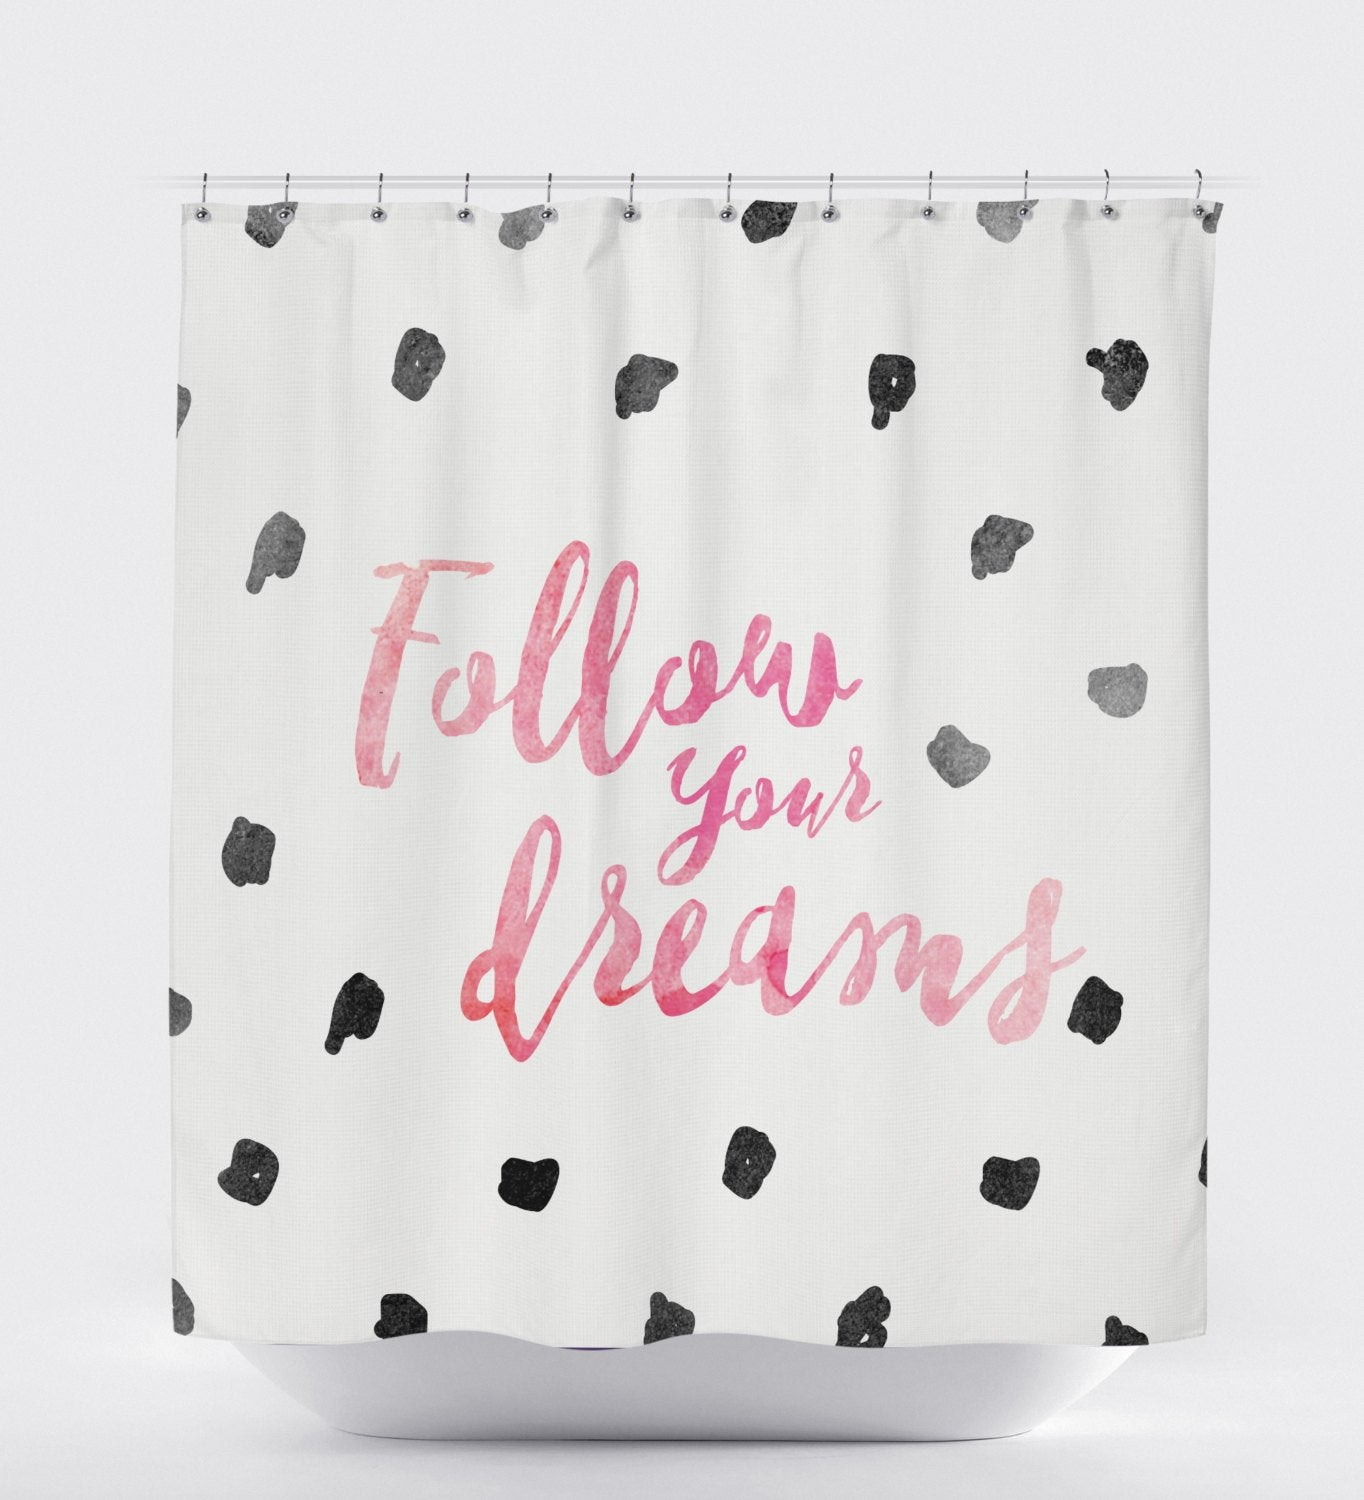 Follow Your Dreams, Shower Curtain White, Quote Shower Curtain, Shower Curtain Kids